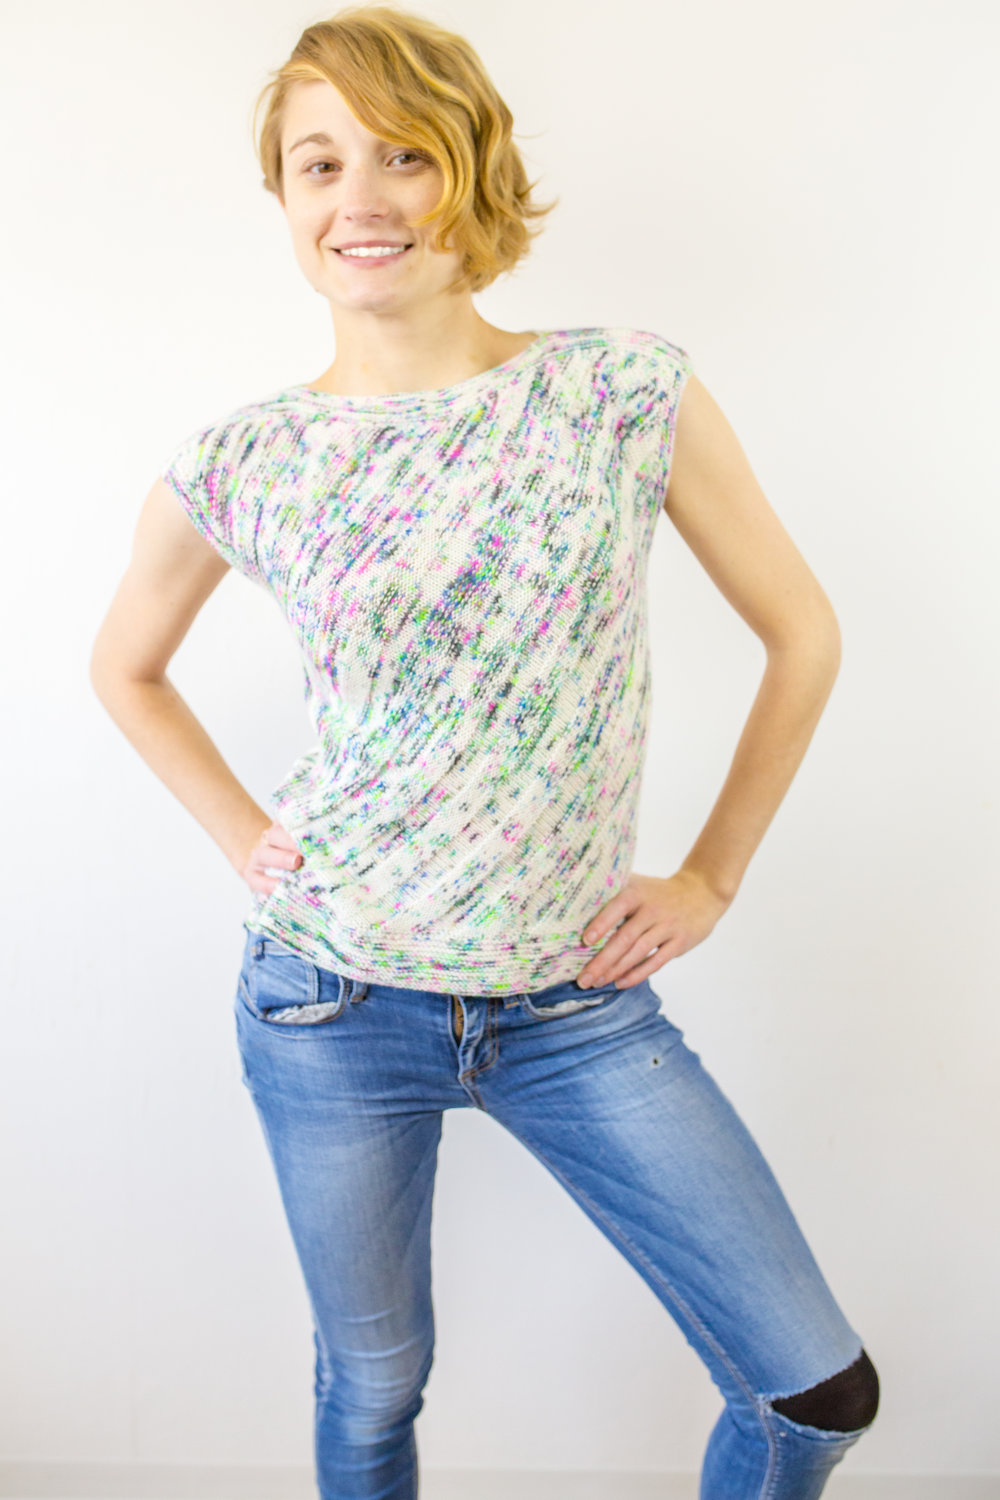 The Wifty Top - Designed by Francoise Danoy of Aroha Knits using Holly and Ivy Dyeworks yarn.